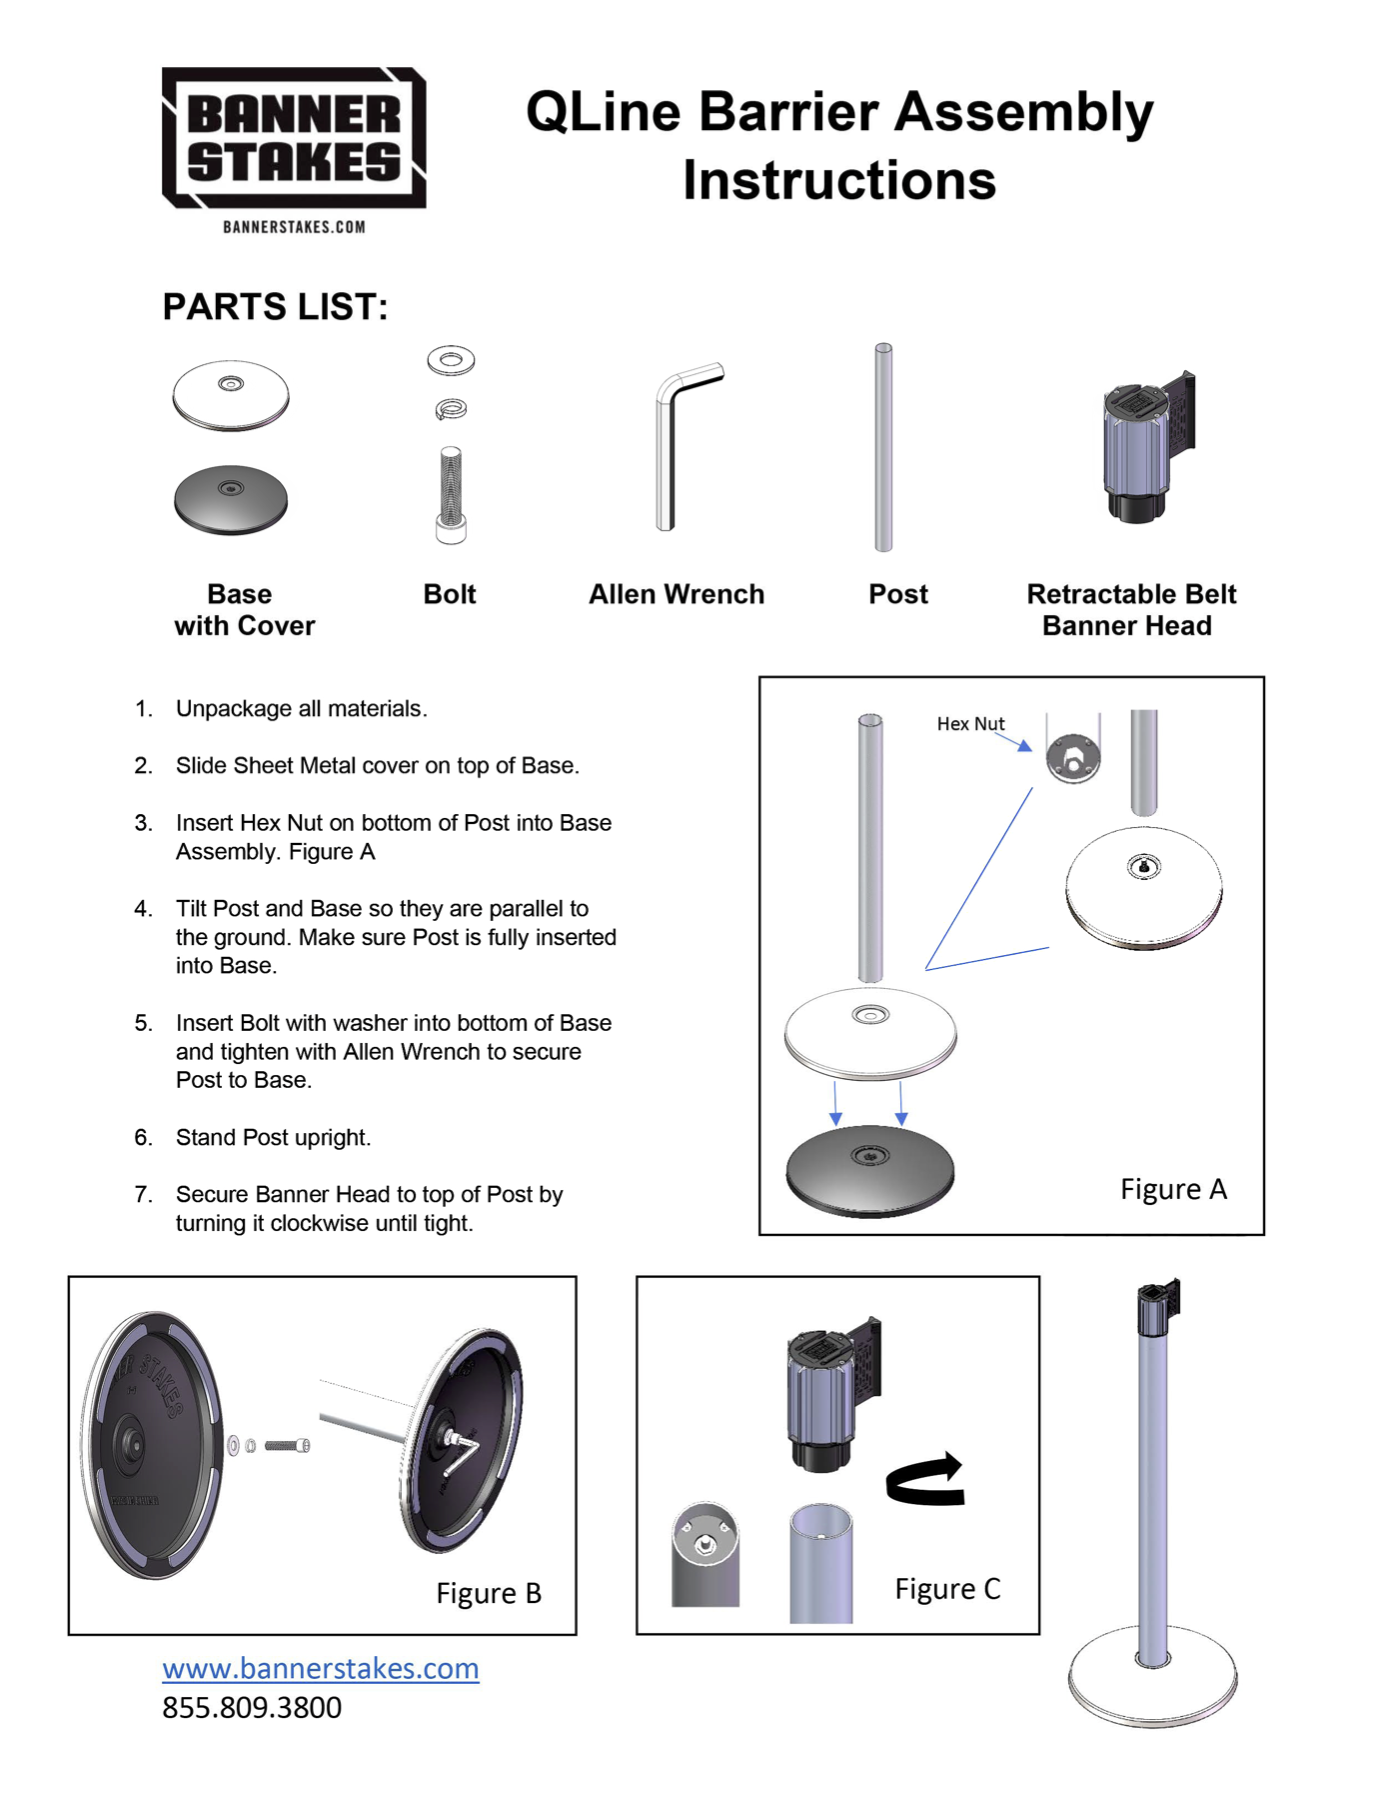 QLine Barrier Assembly Instructions